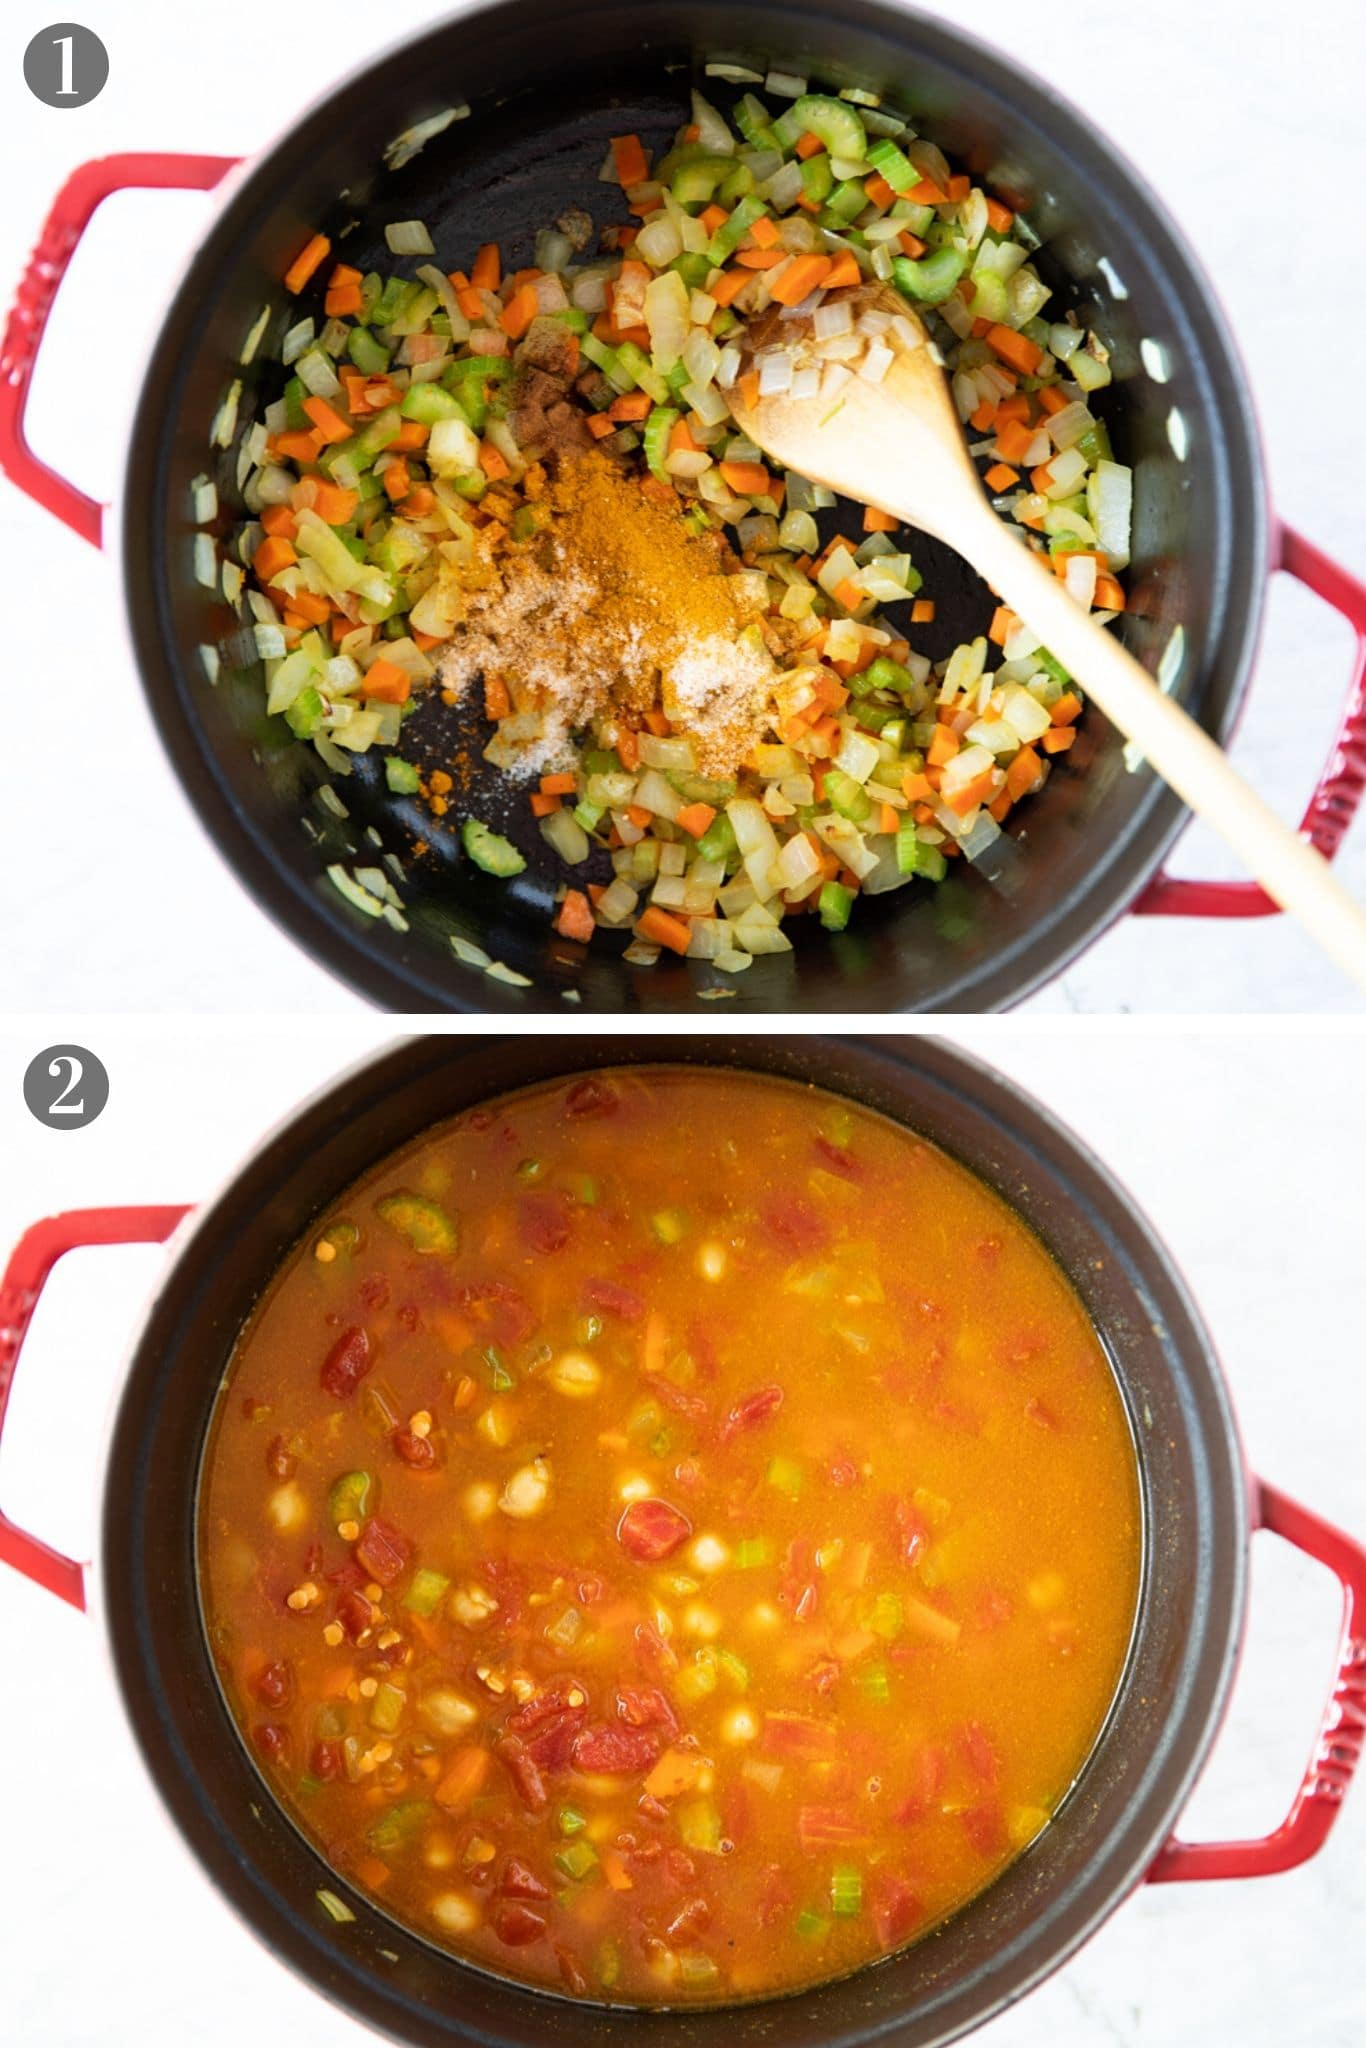 Two photos showing a pot with ingredients for harira, a North African stew made with chickpeas, lentils, rice and vegetables. | from verygoodcook.com